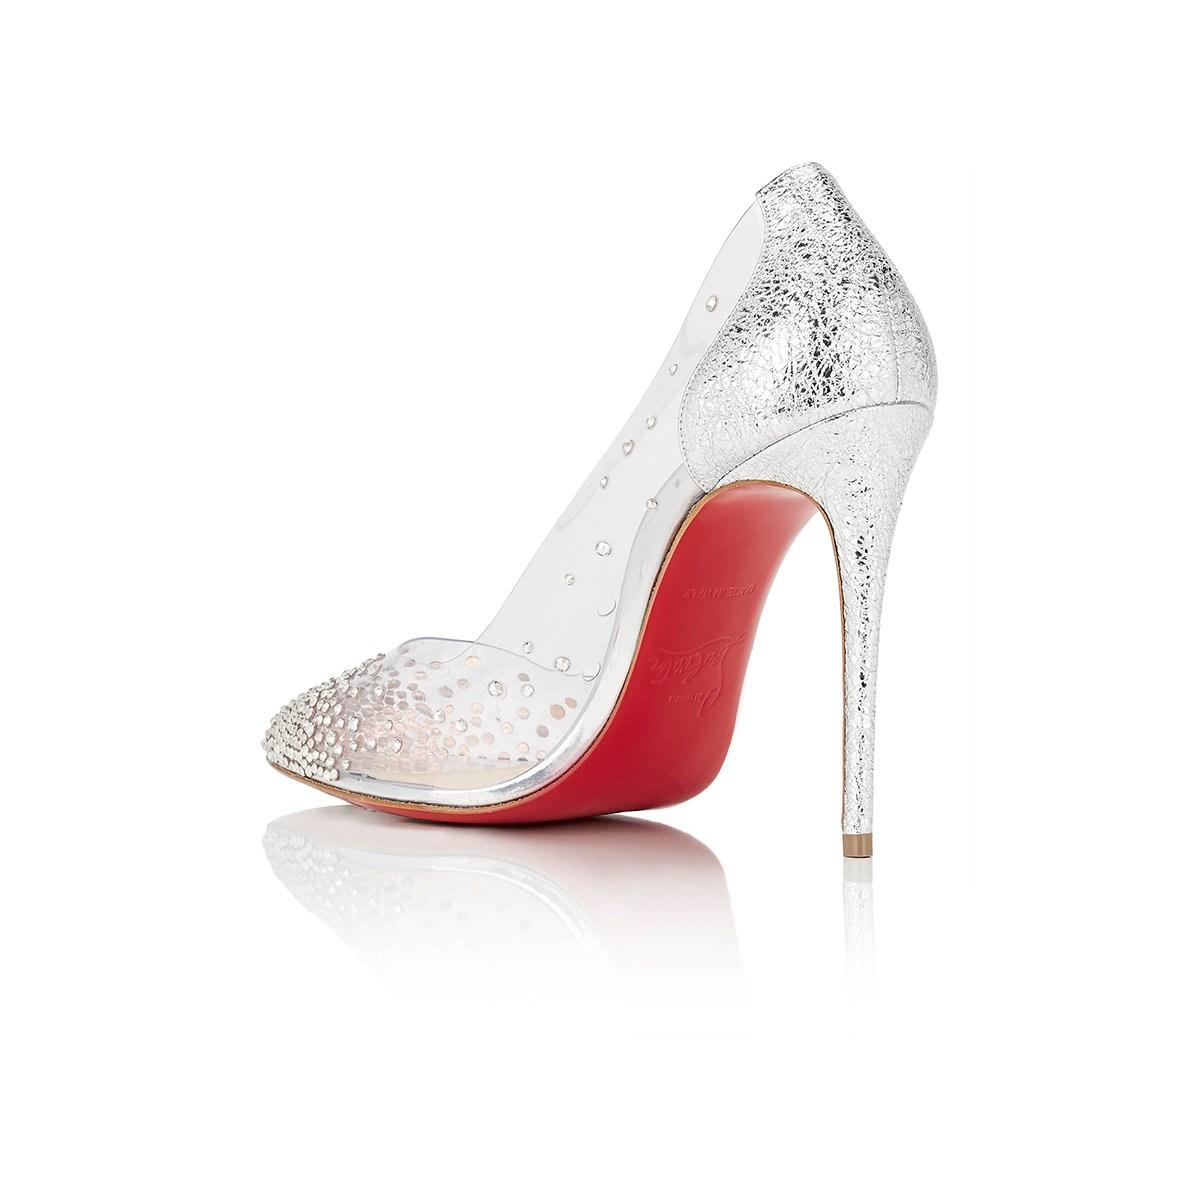 72383388e23 Lyst - Christian Louboutin Degrastrass Pvc   Specchio Leather Pumps ...